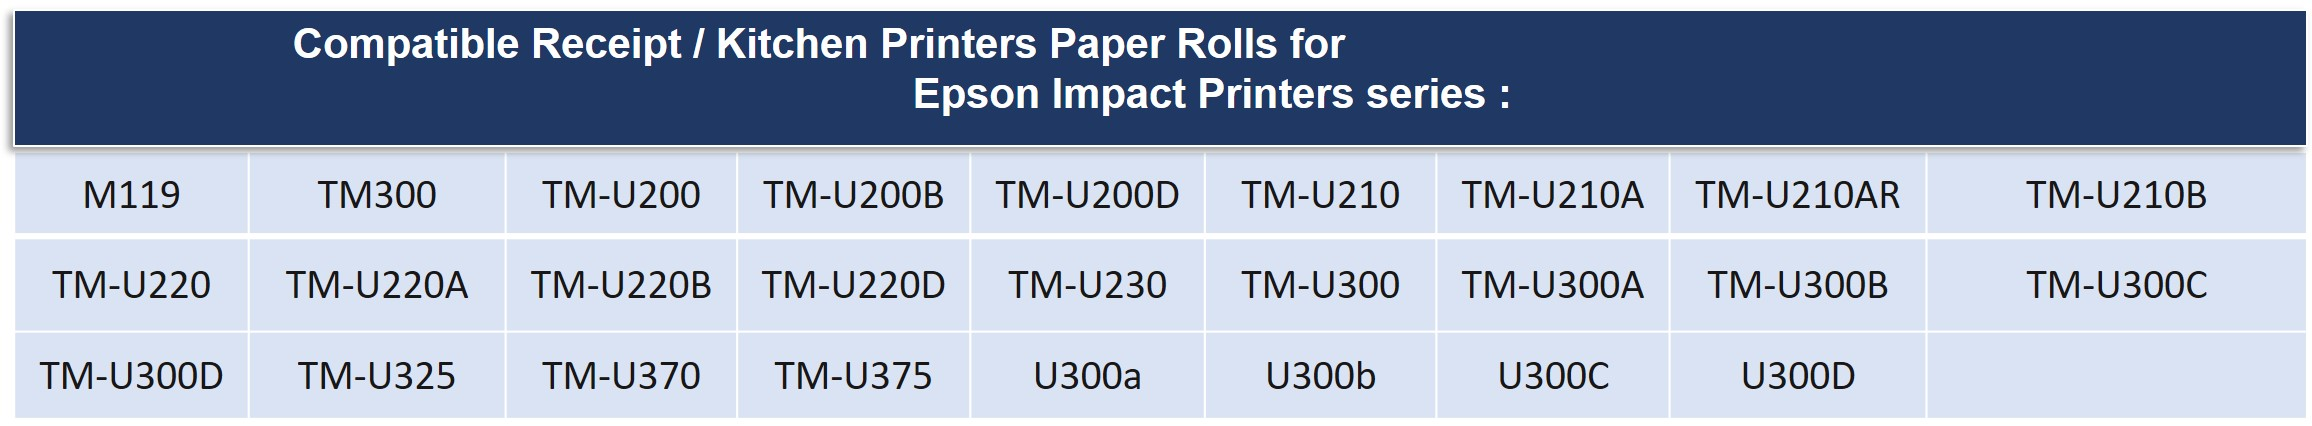 epson-impact-receipt-kitchen-printer-paper-for-epson-impact-printer-ii.jpg